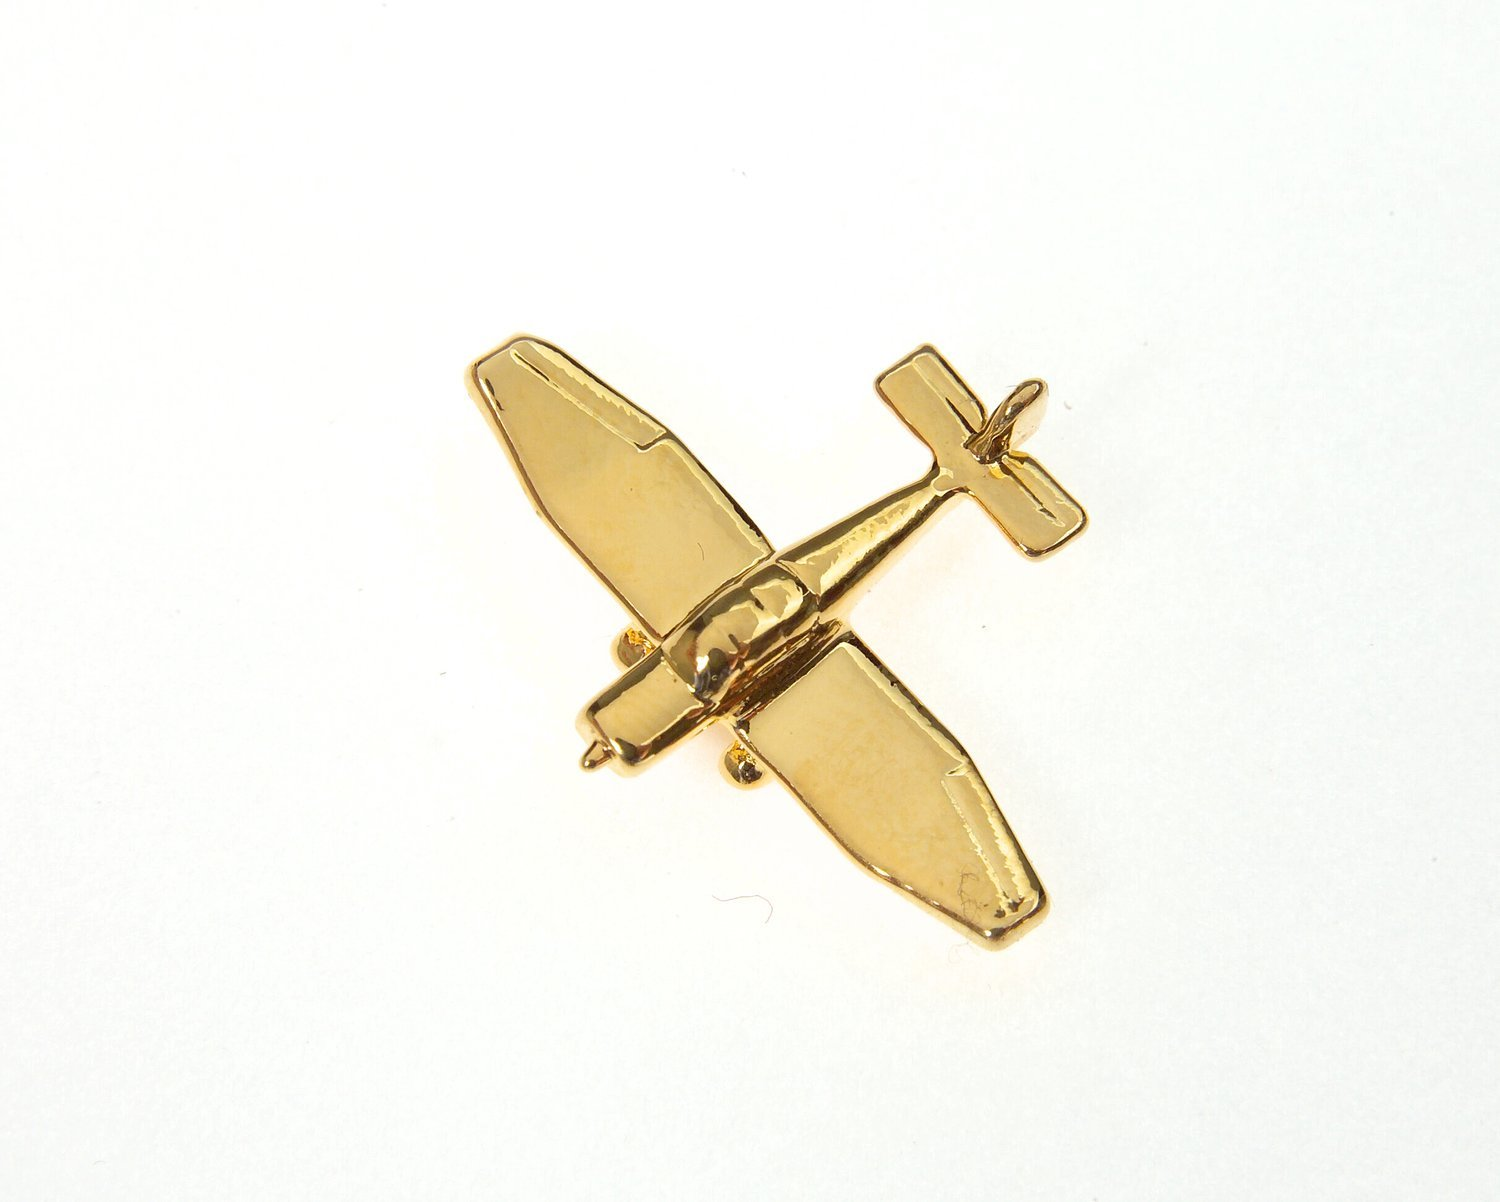 Jodel Gold Plated Tie / Lapel Pin